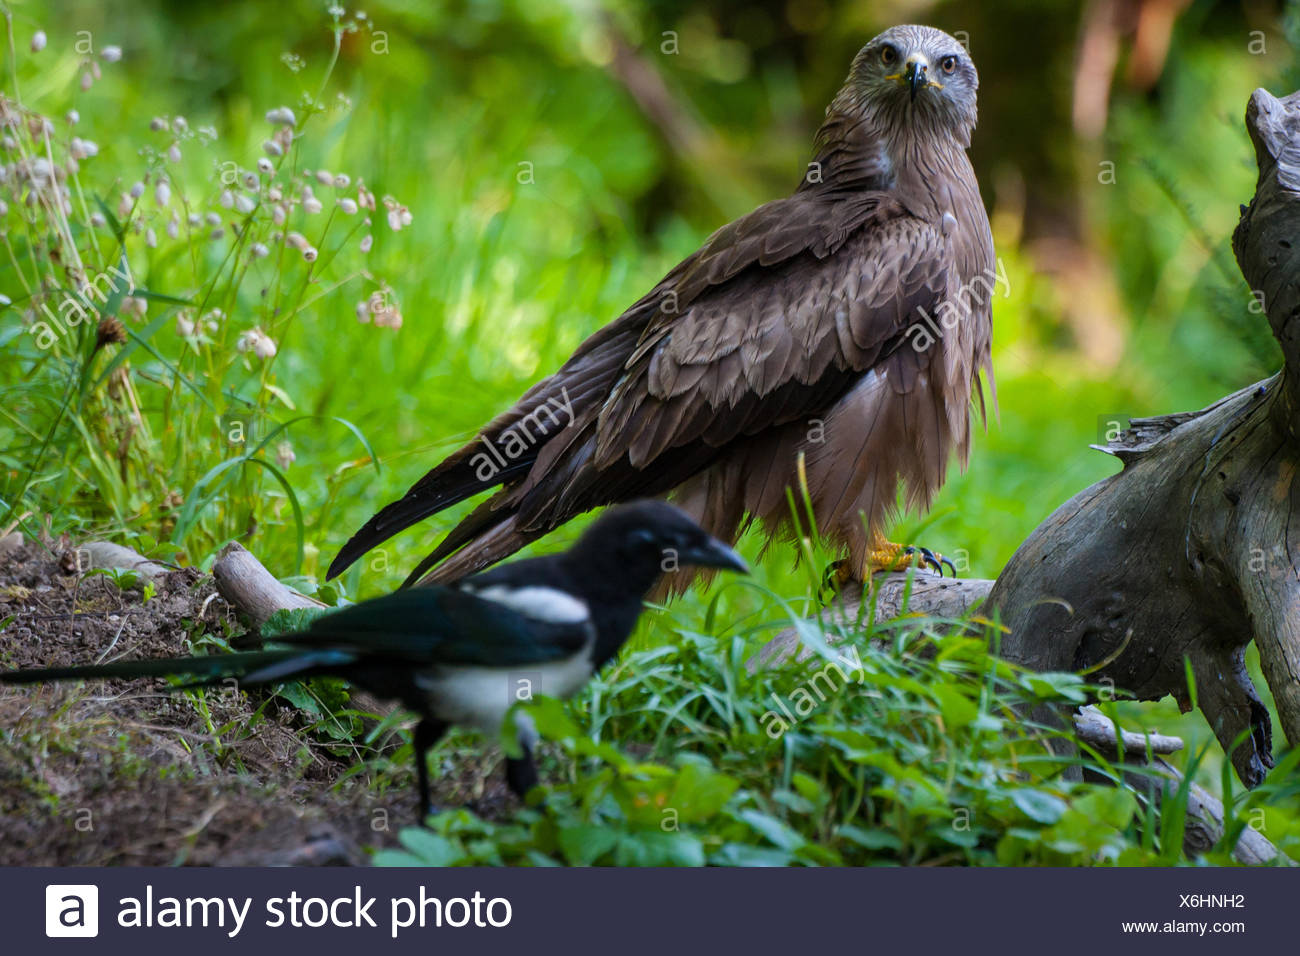 Black kite, Yellow-billed kite (Milvus migrans), sits on a root on the ground and is watched by a magpie, Switzerland, Sankt Gallen, Rheineck - Stock Image